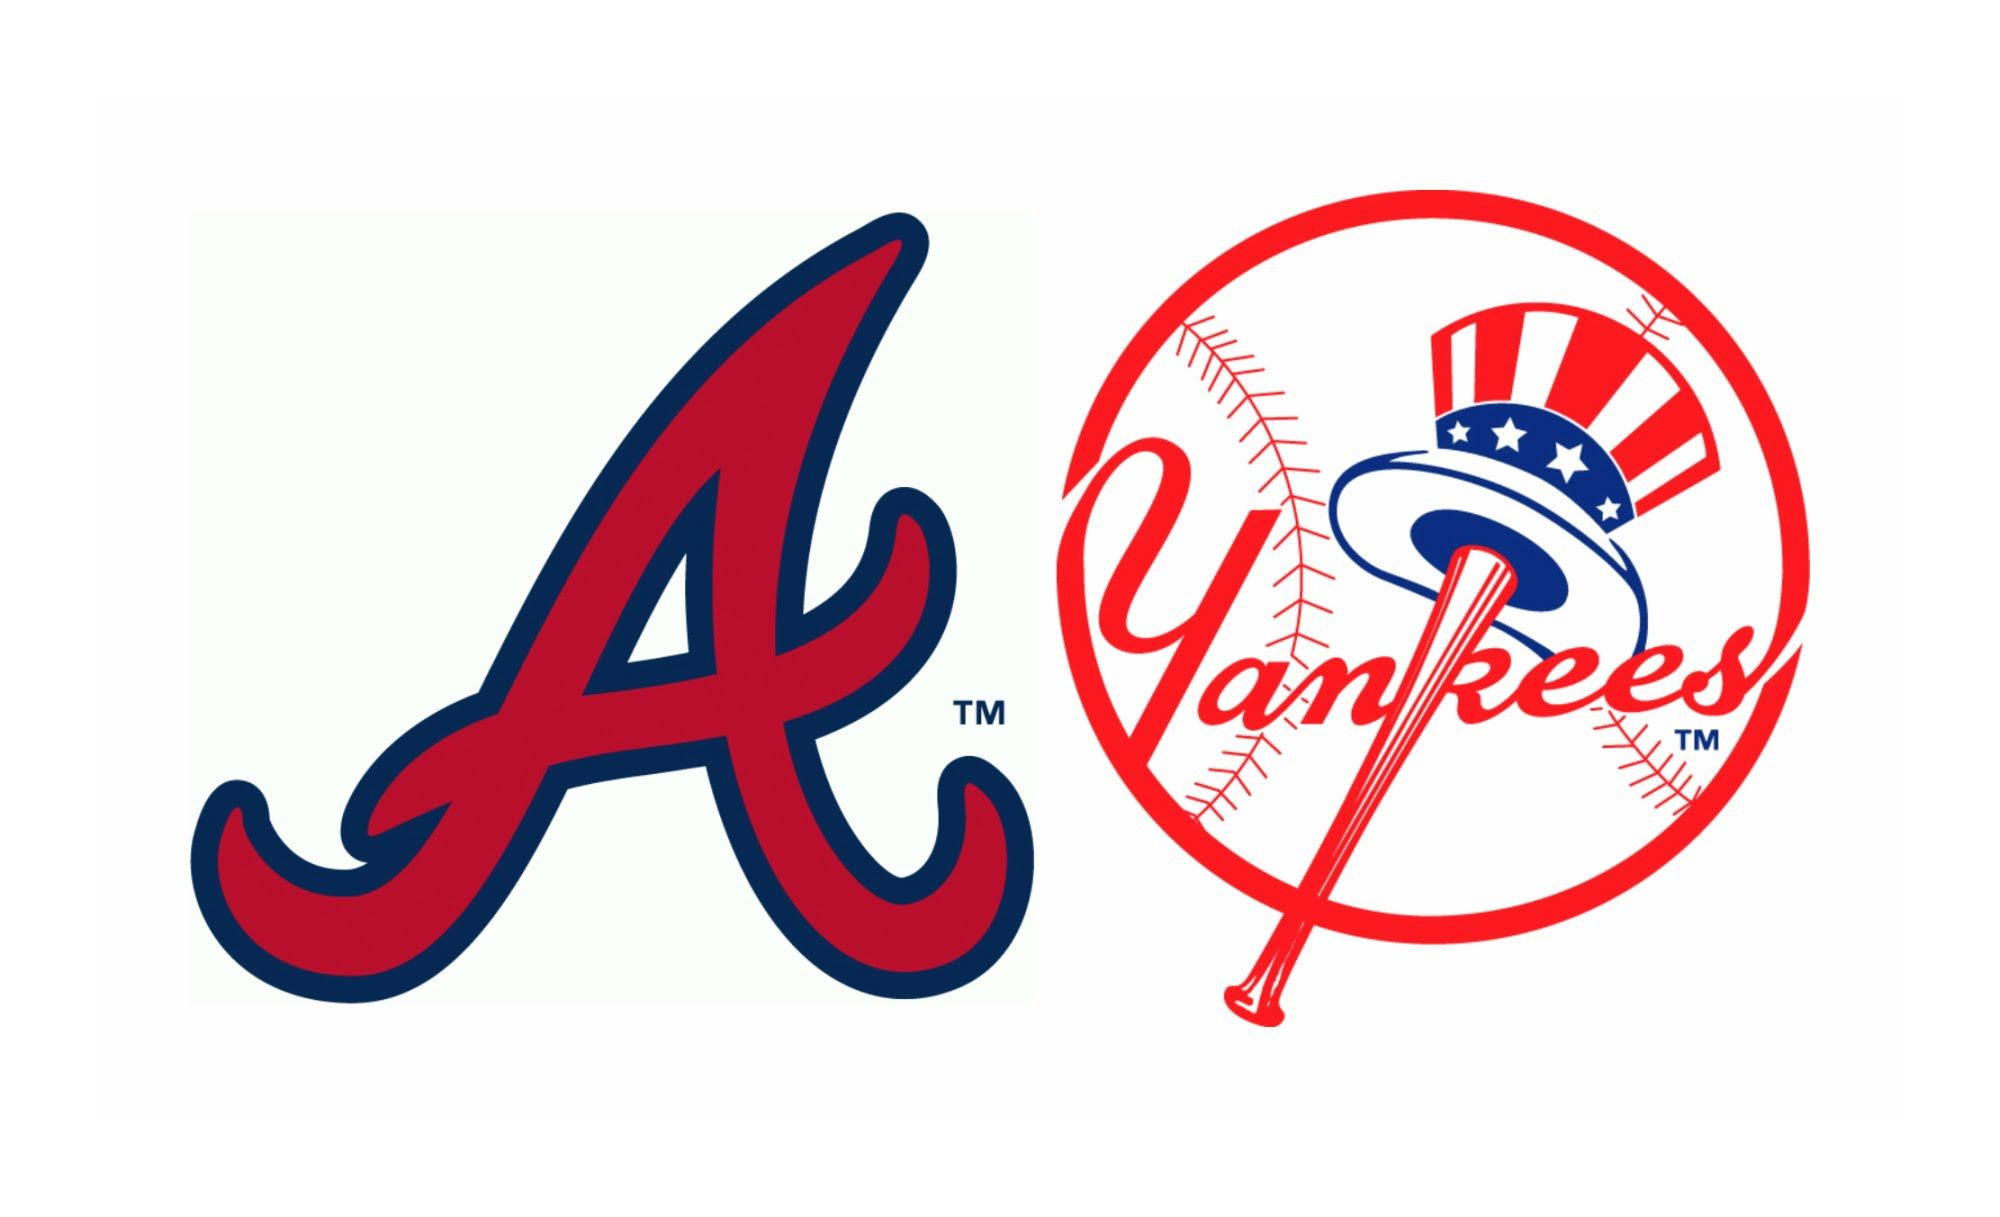 Spring Training Atlanta Braves Vs New York Yankees Tickets At Champion Stadium Espn Wide World Of Spor Braves Tickets Atlanta Braves New York Yankees Tickets